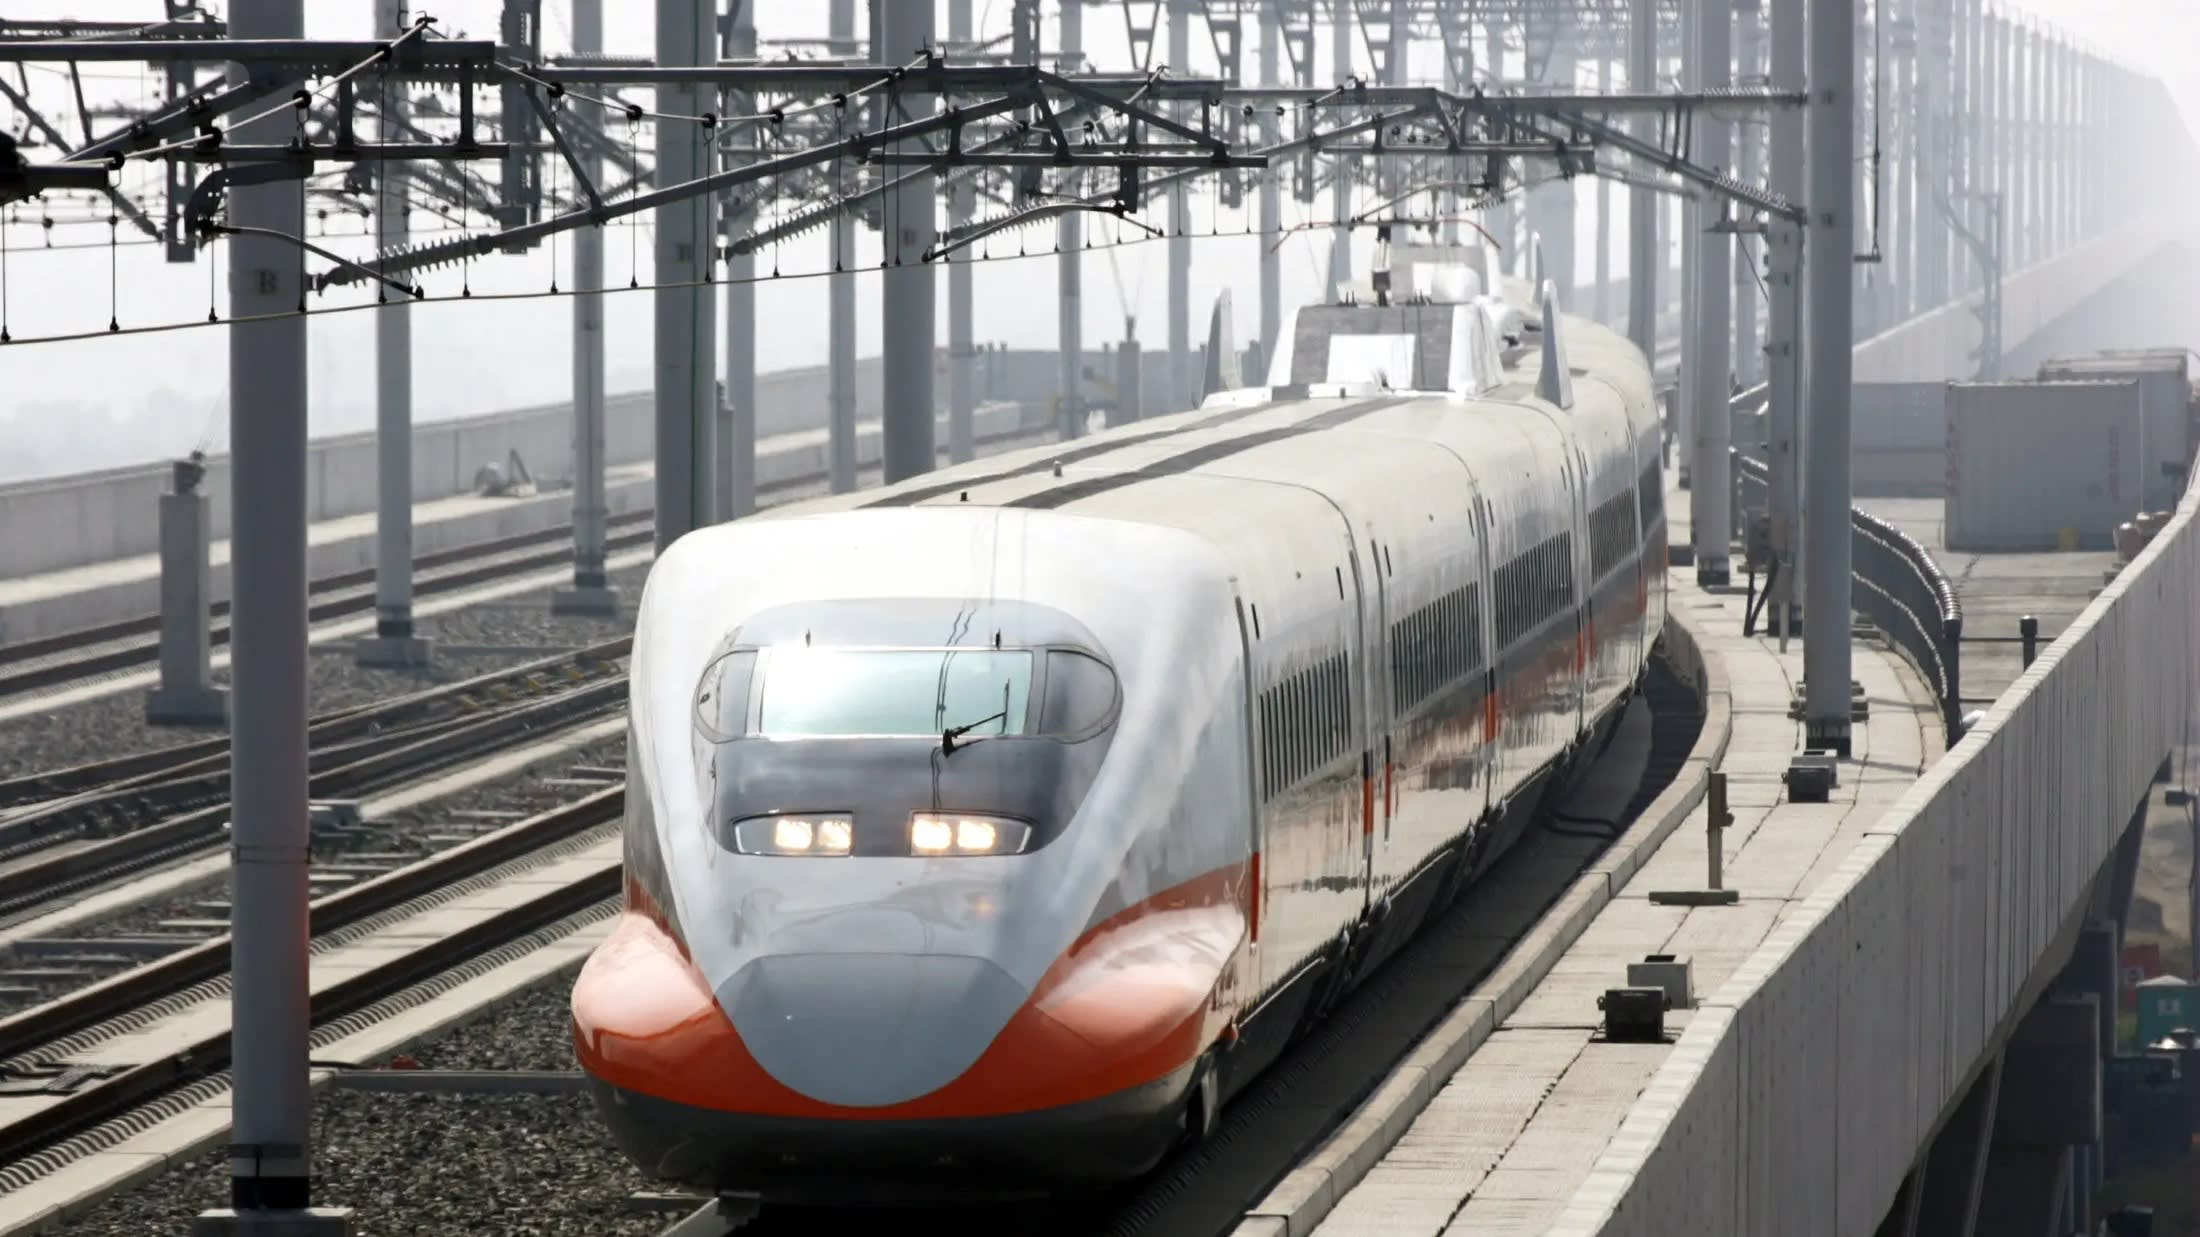 A train using Japan's shinkansen bullet train technology approaches a platform in Taiwan. Hitachi will supply train cars as Taiwan updates its aging rolling-stock fleet.